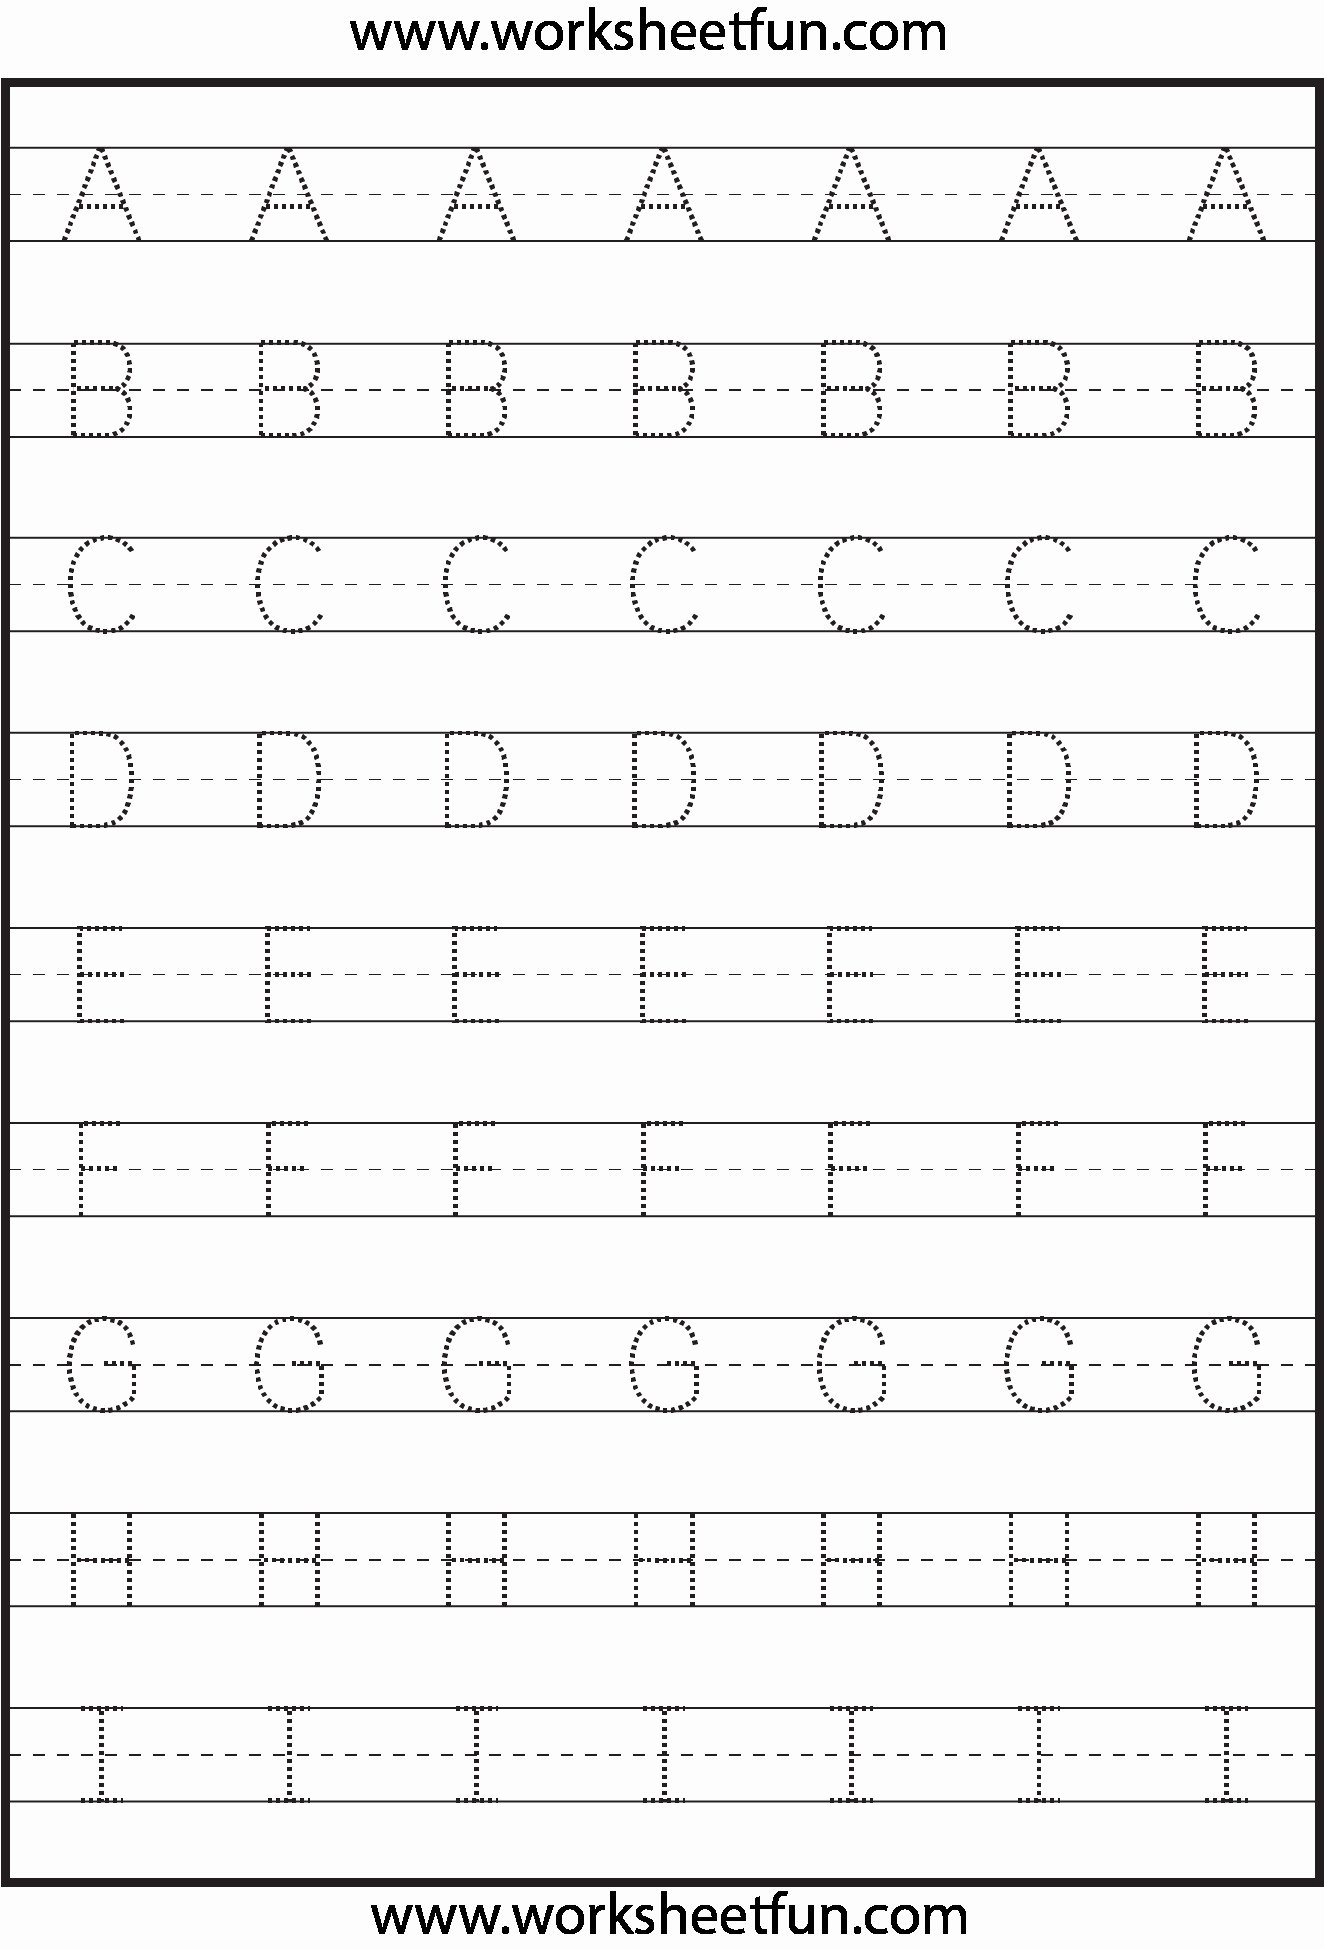 Printable Abc Worksheets for Preschoolers Unique Math Worksheet Kindergarten Abc Worksheets Kidzone Ws